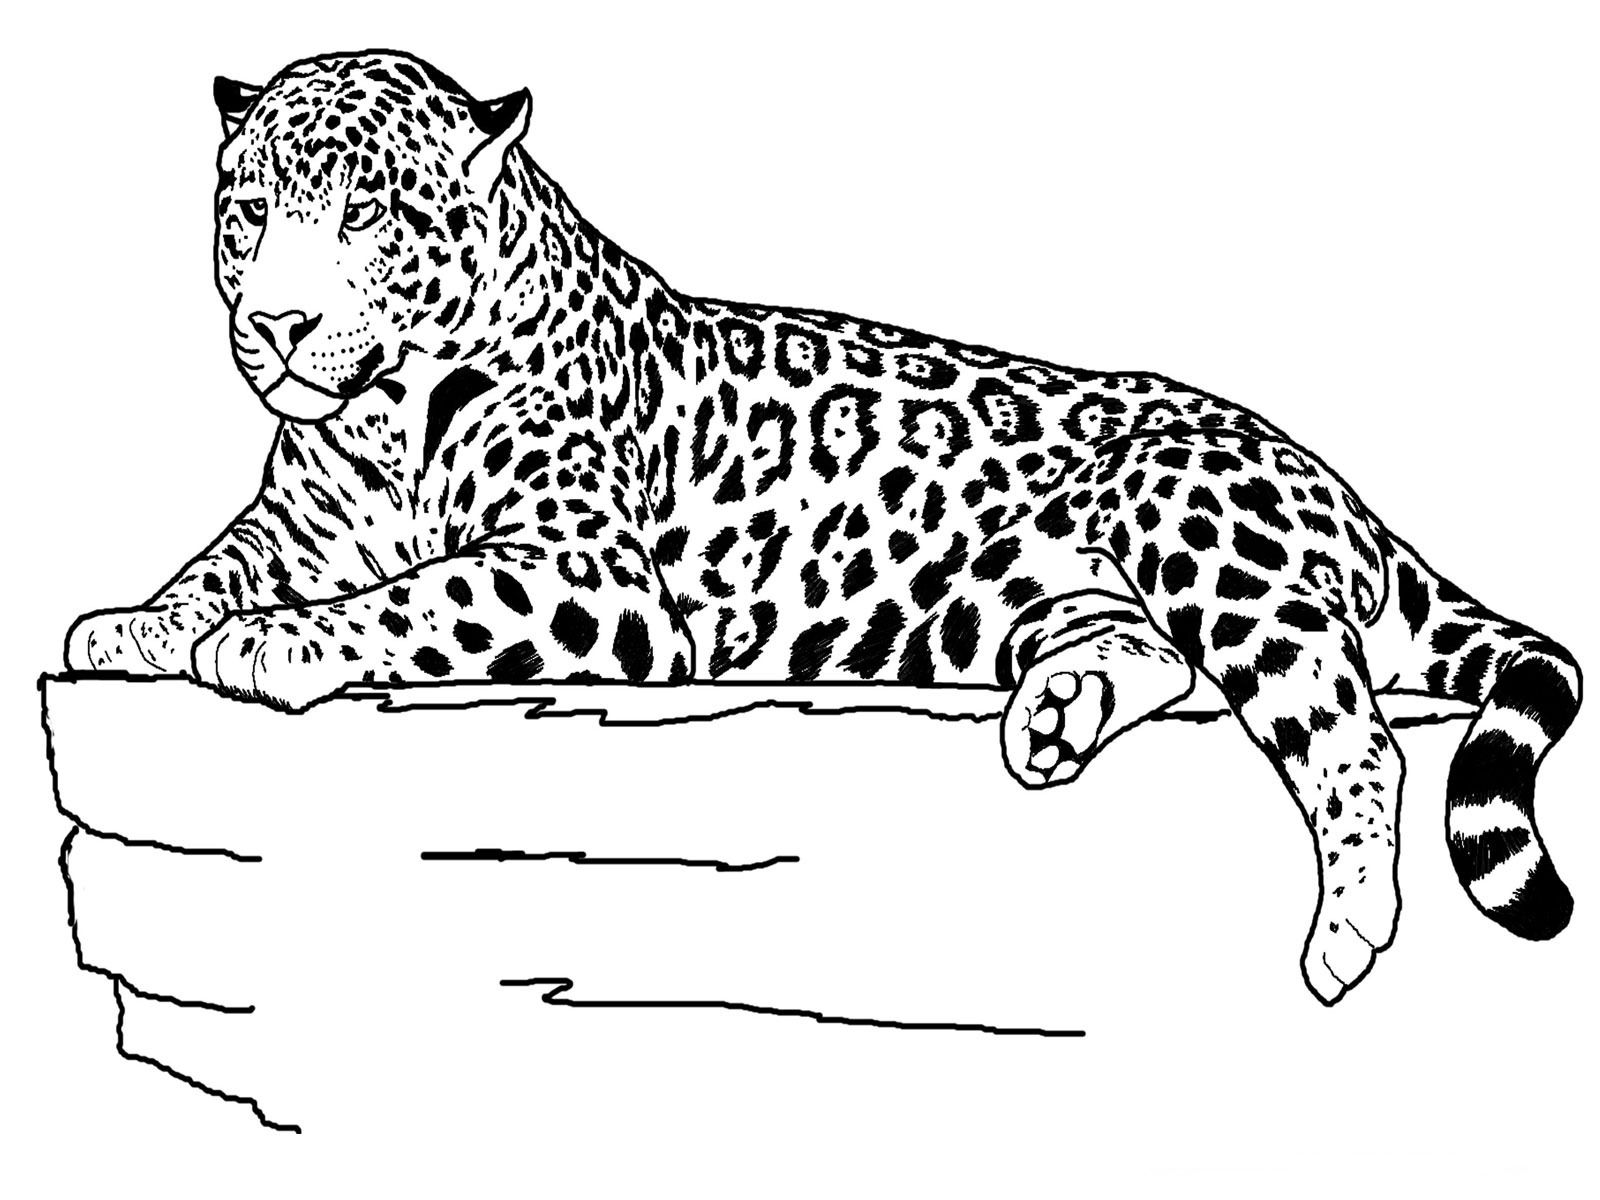 Free animals coloring pages for kids to print - Realistic Animals Coloring Pages Printable Coloring Pages Sheets For Kids Get The Latest Free Realistic Animals Coloring Pages Images Favorite Coloring